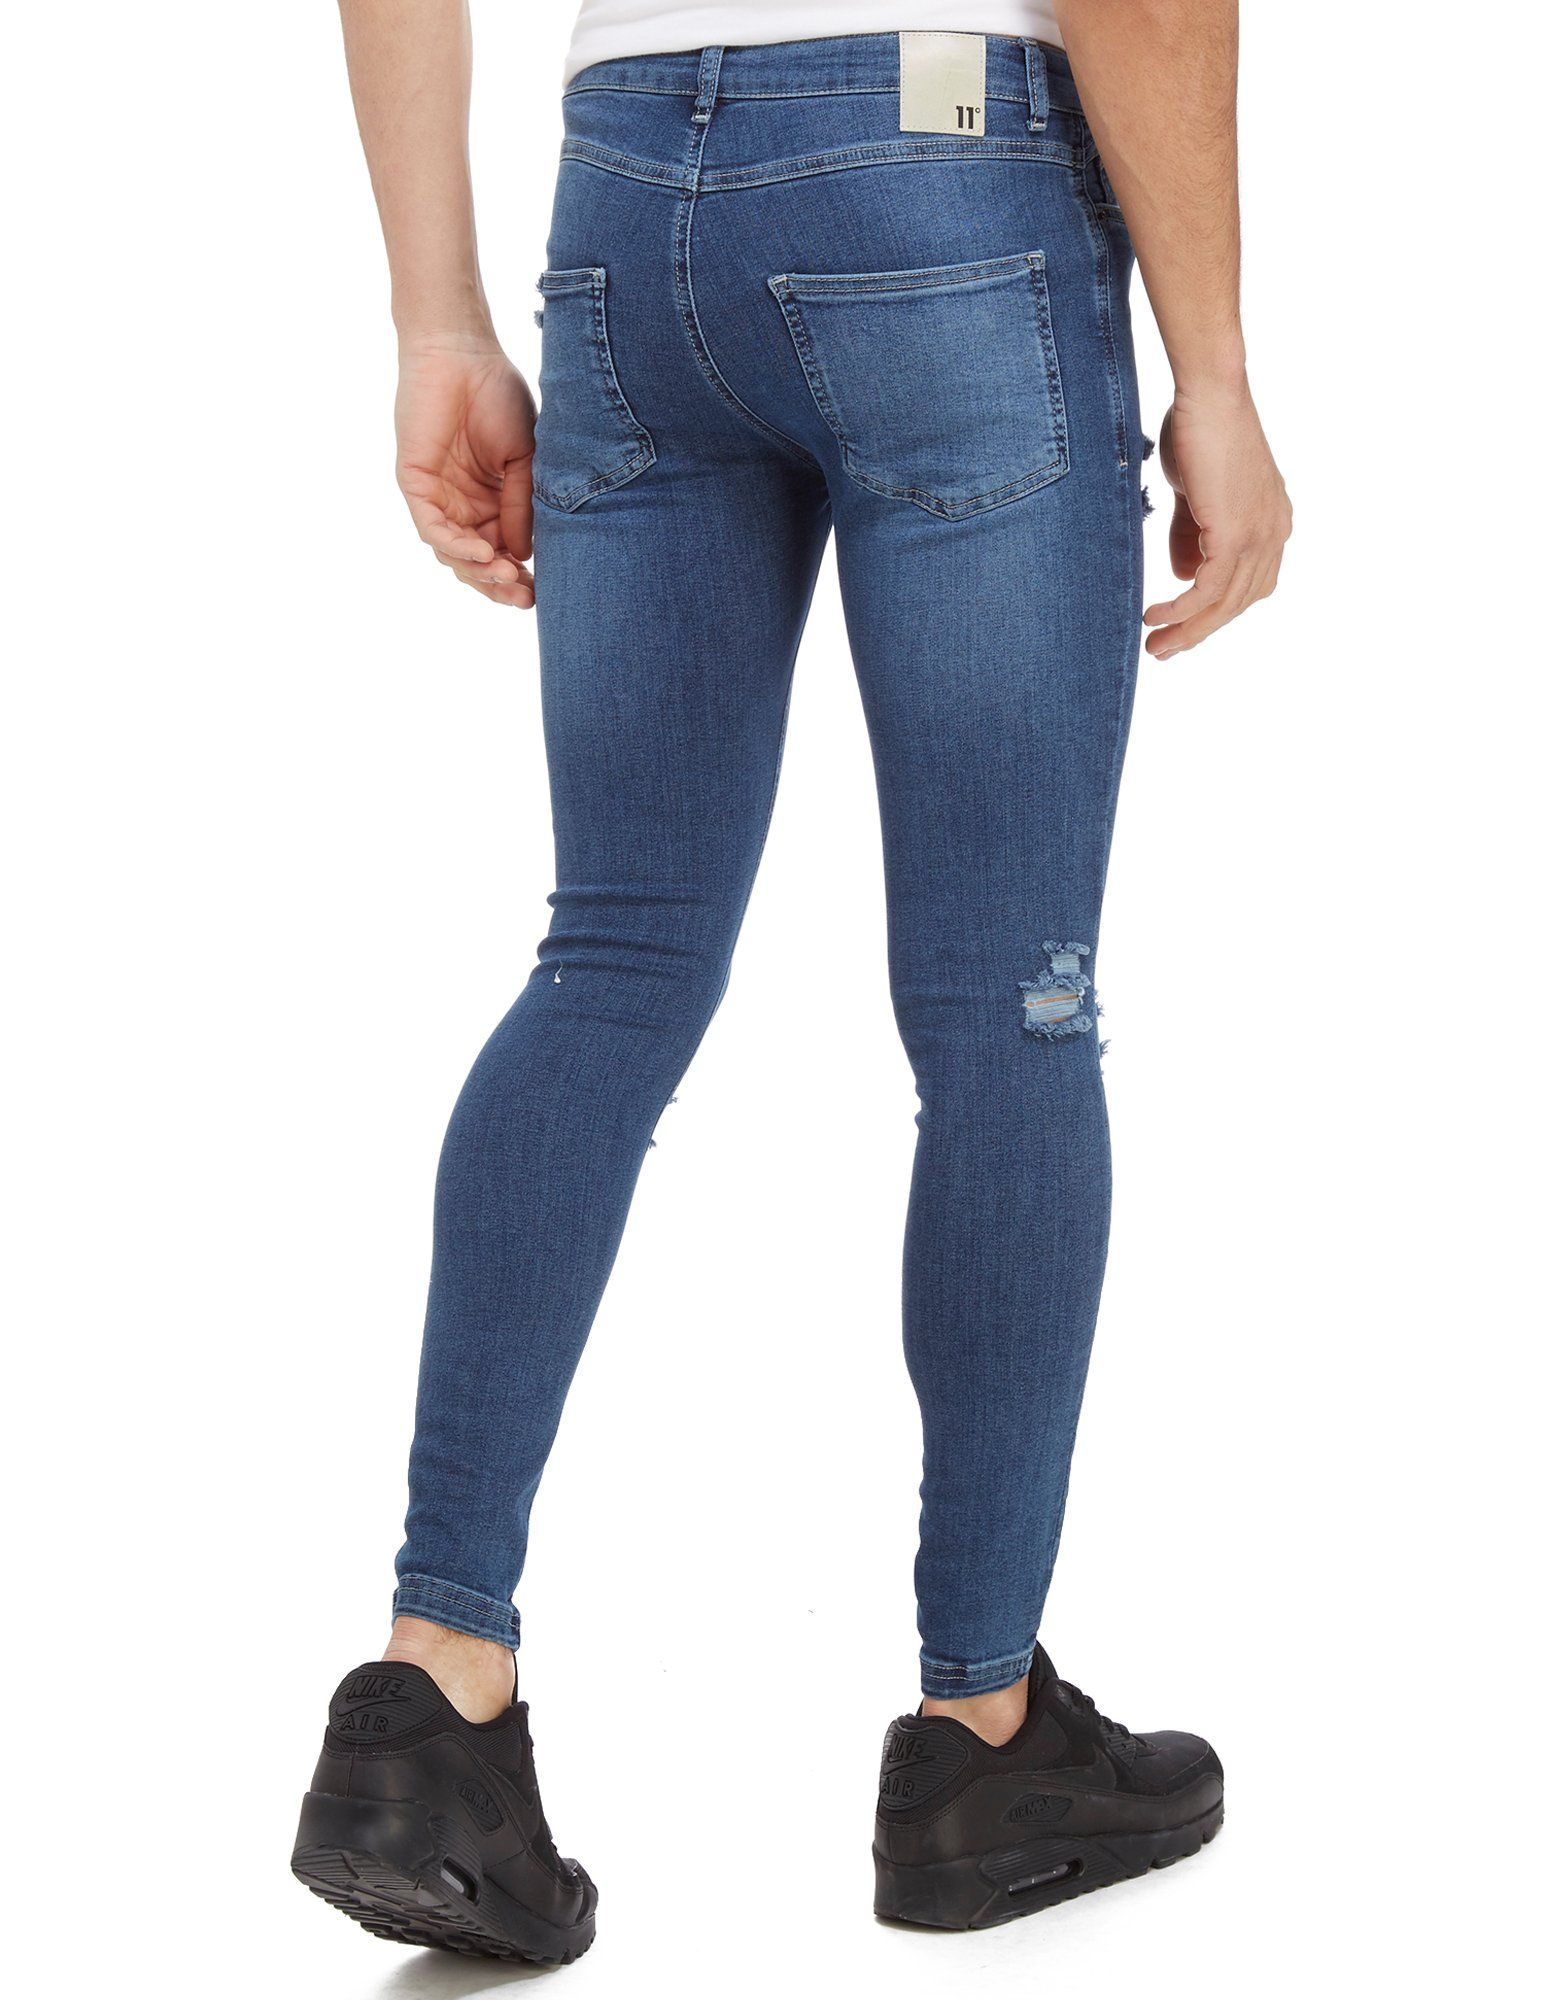 11 Degrees Gerissene Denim Jeans Blau